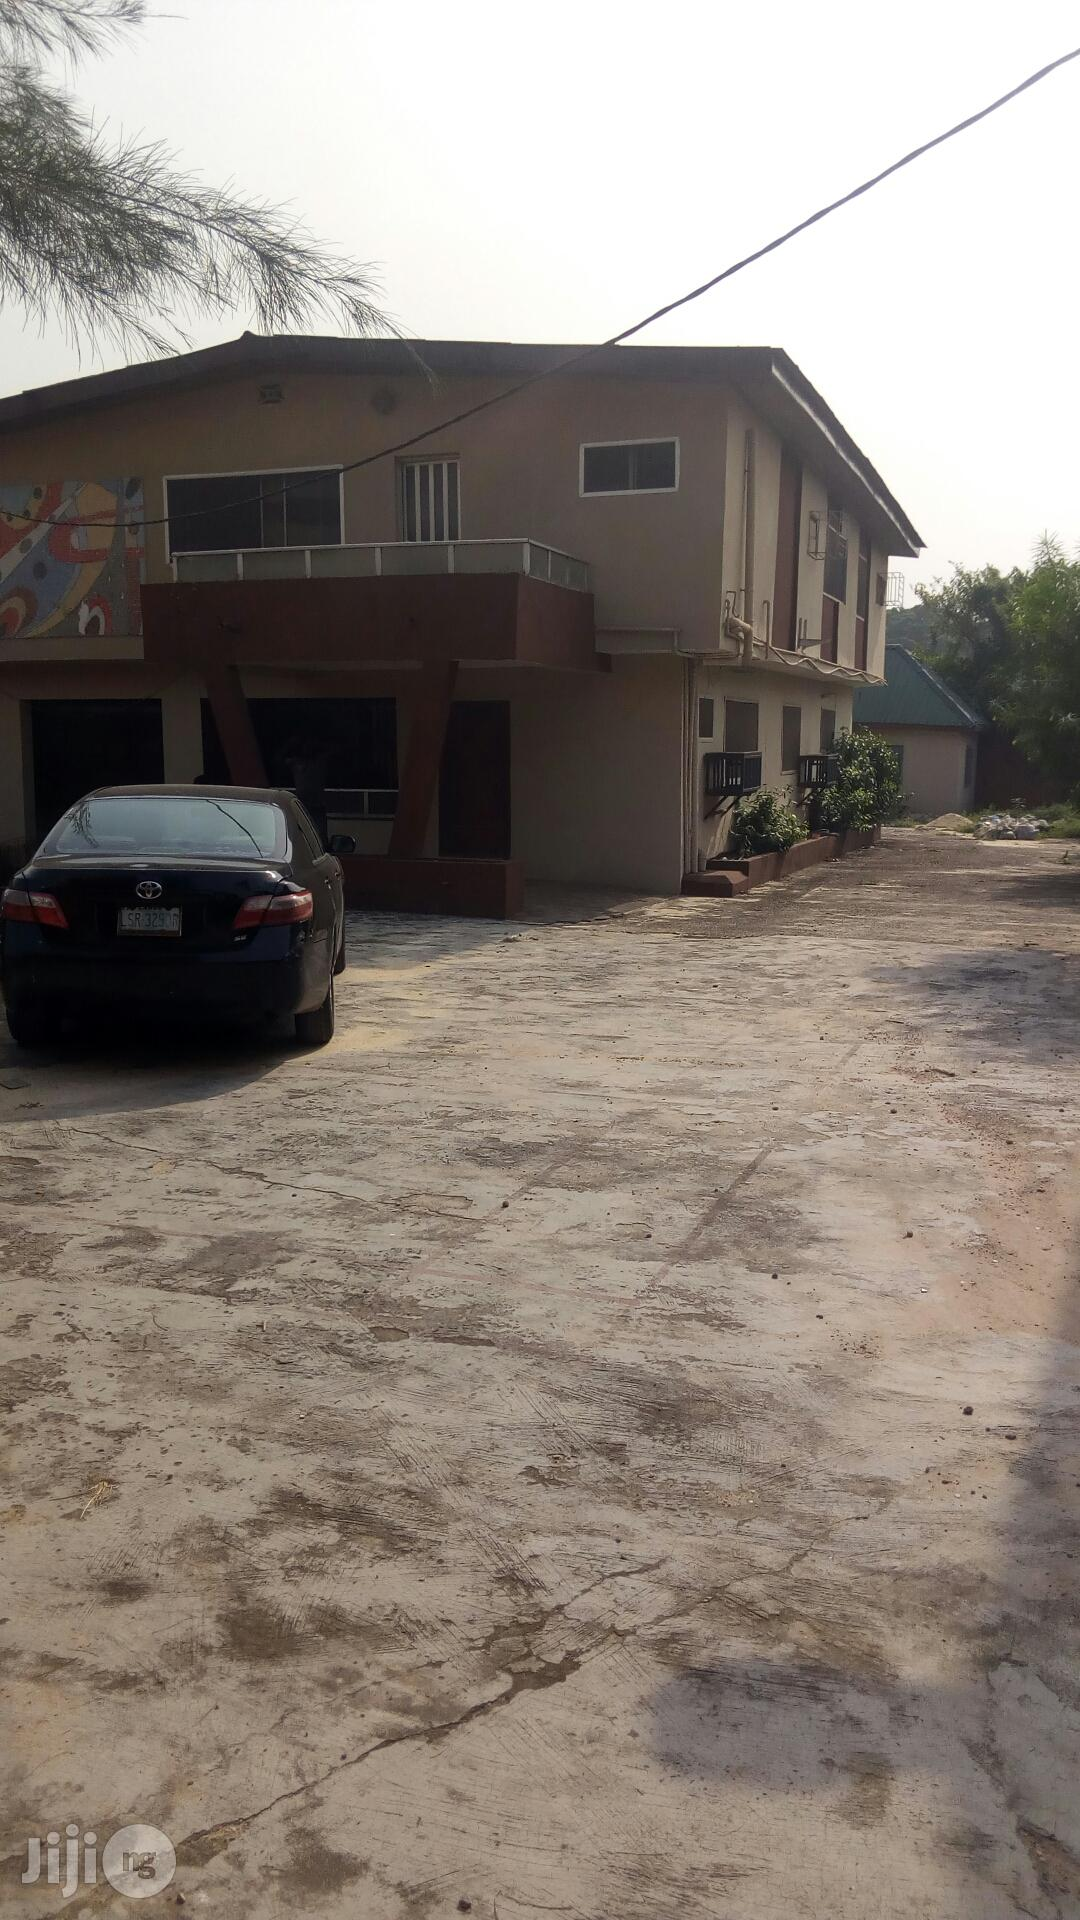 5 Bedroom Duplex With 3 Room Bq For Lease For Commercial Use | Commercial Property For Rent for sale in Ikeja, Lagos State, Nigeria